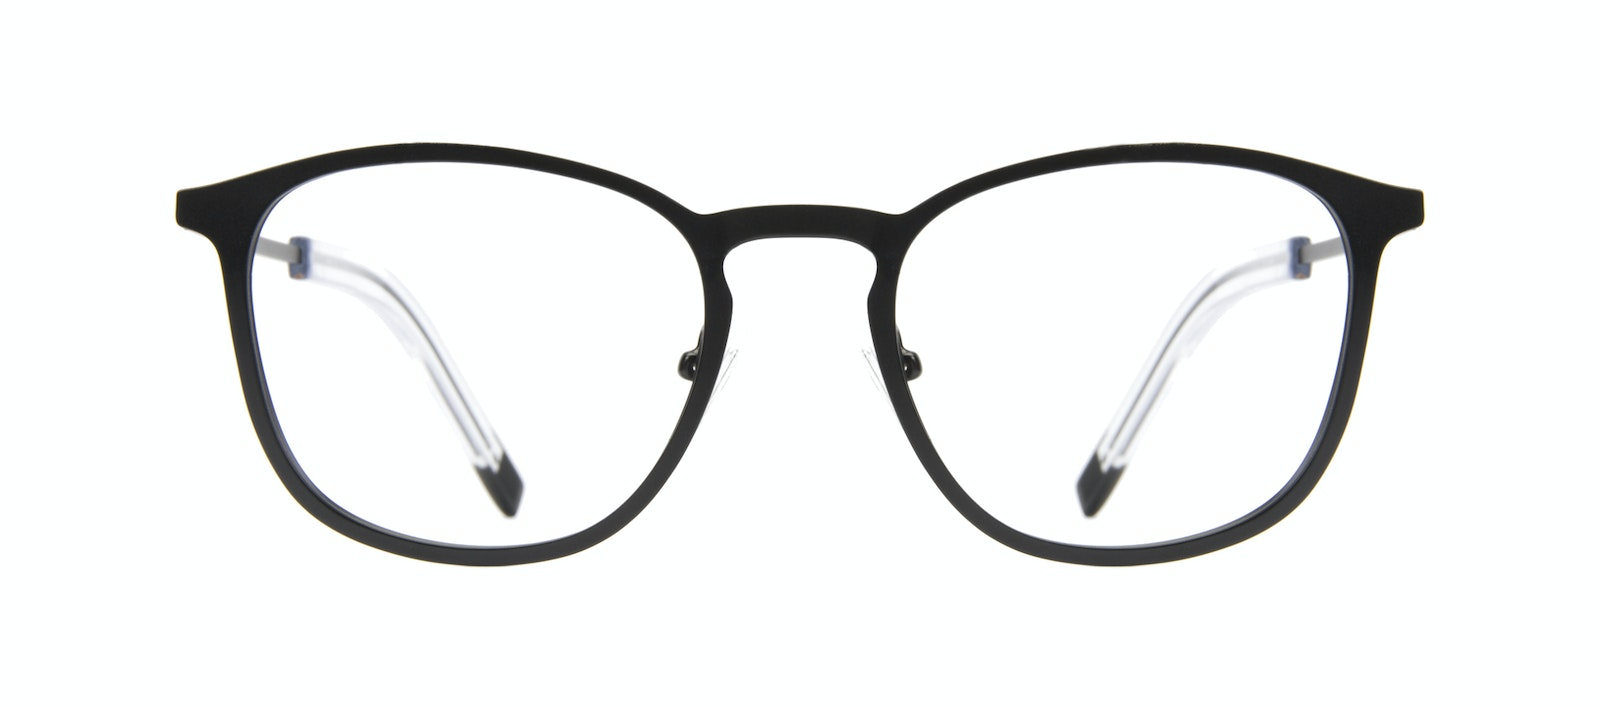 Affordable Fashion Glasses Rectangle Square Eyeglasses Men Core Matte Black Front